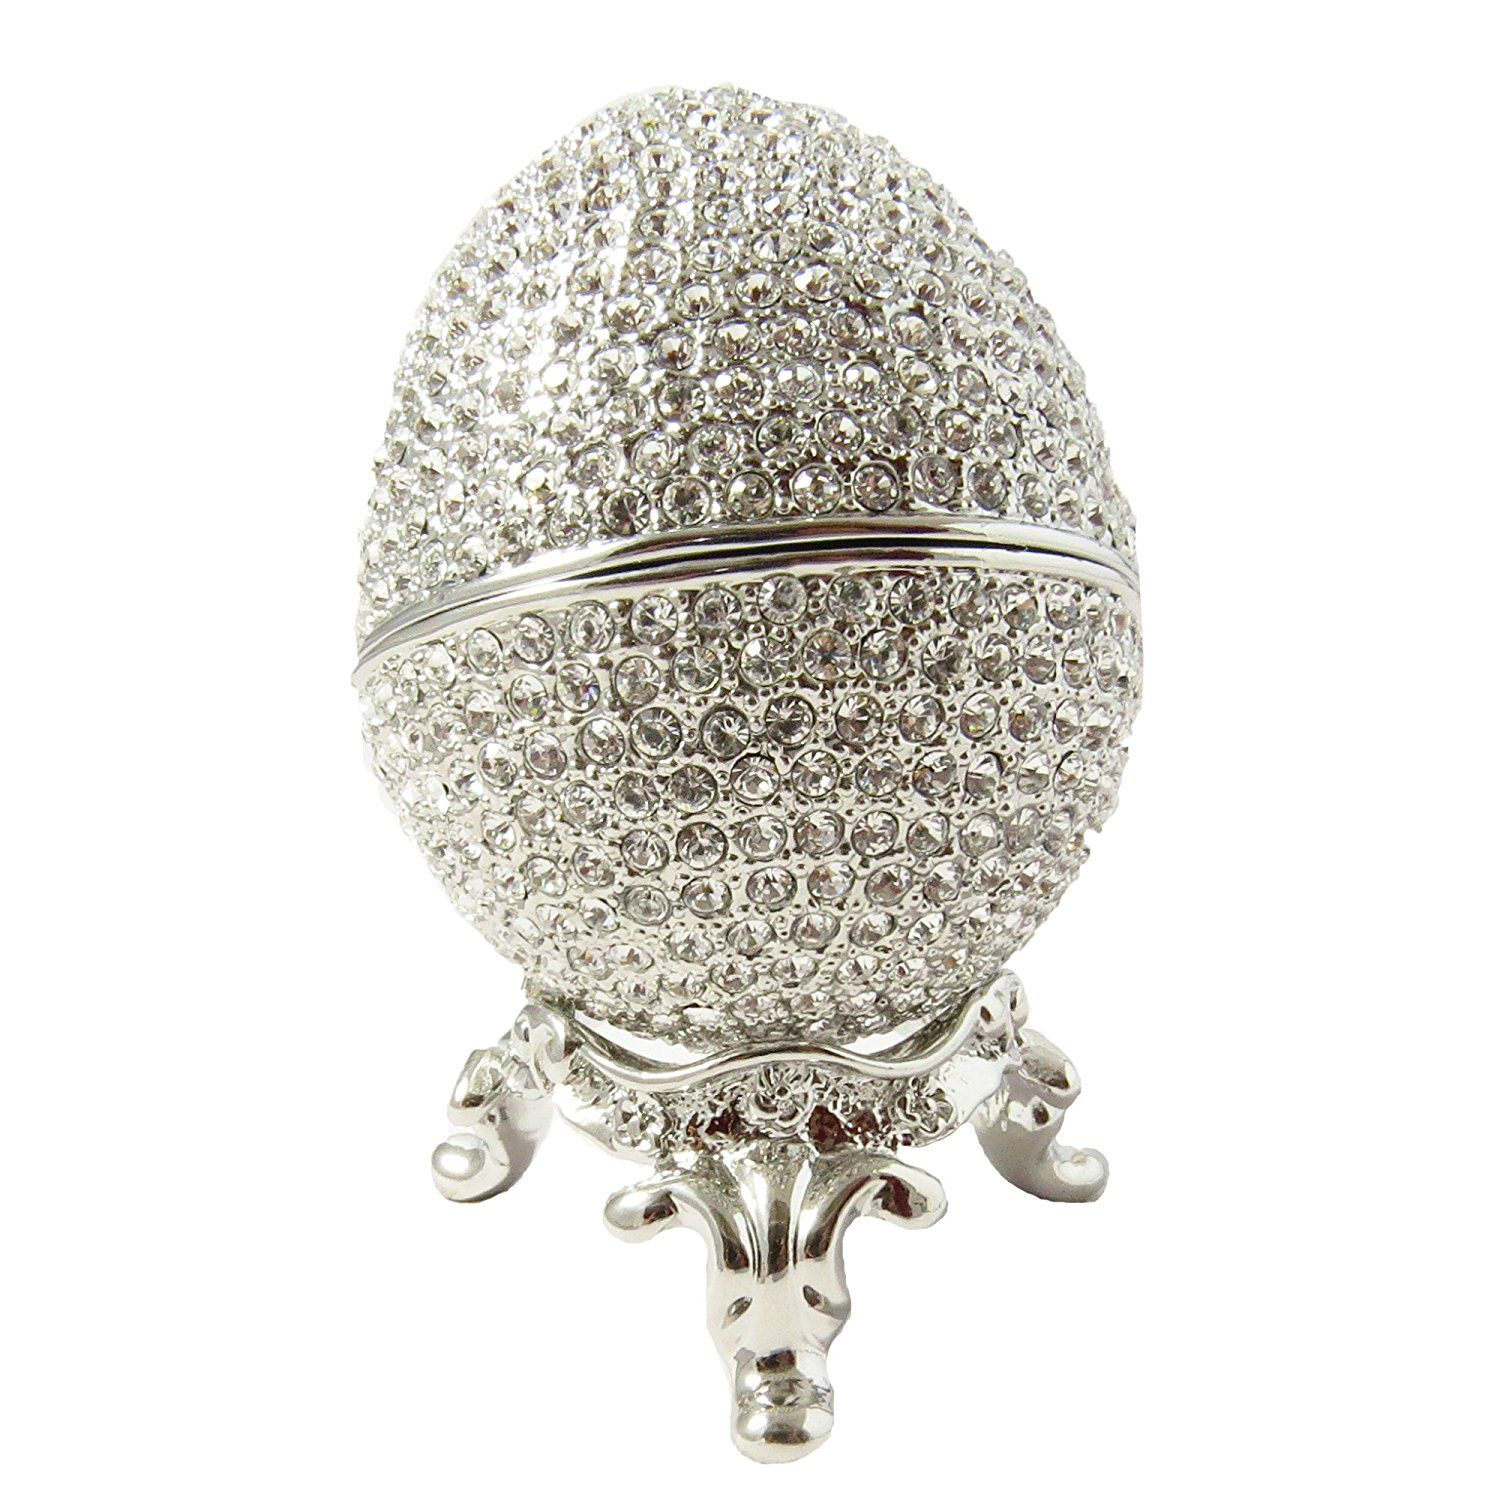 Rhodium Plated Russian Faberge Style Egg Proposal Wedding